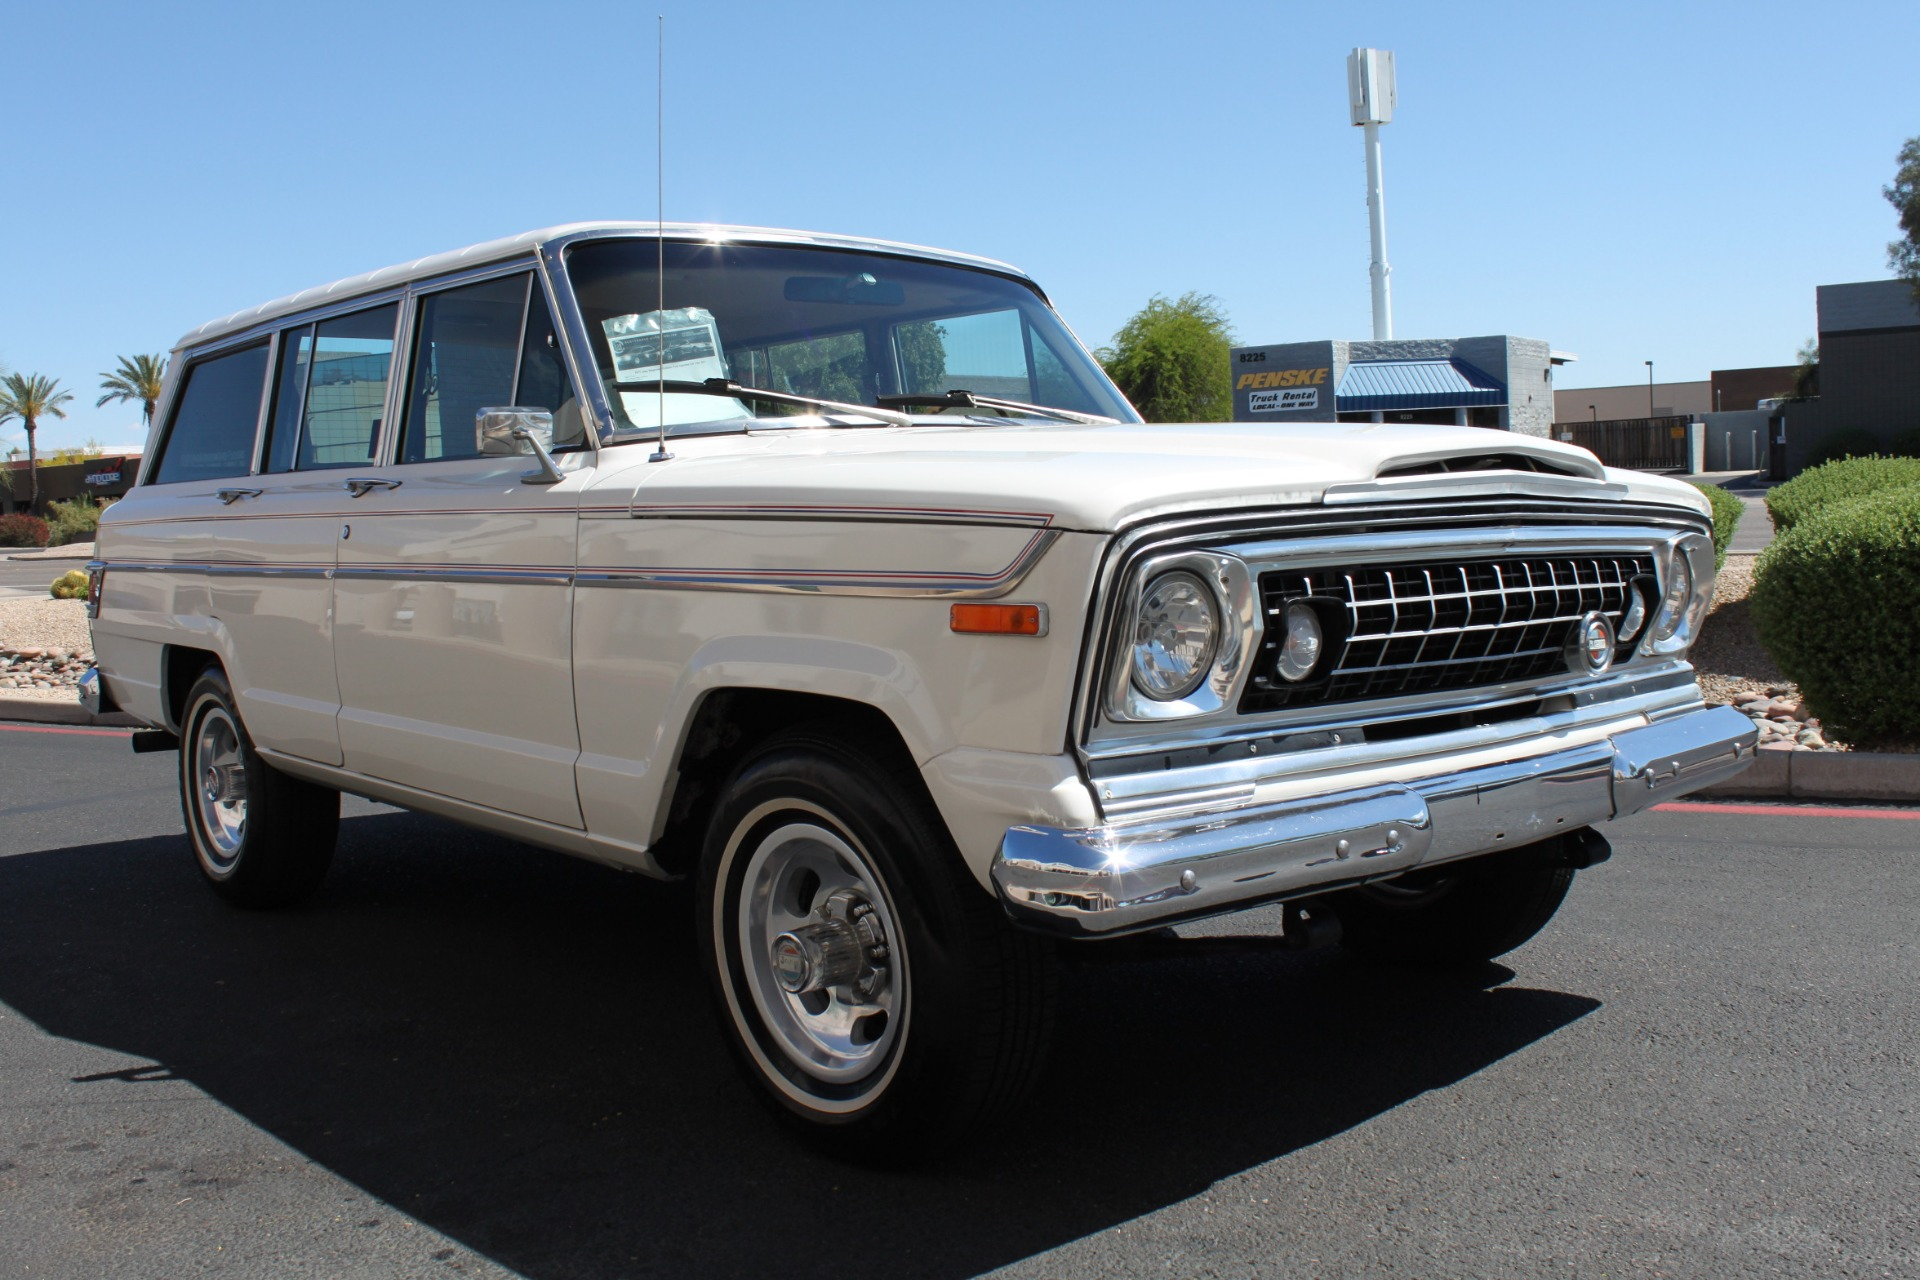 Used-1977-Jeep-Wagoneer-Custom-Fuel-Injected-66-Liter-401-Mercedes-Benz